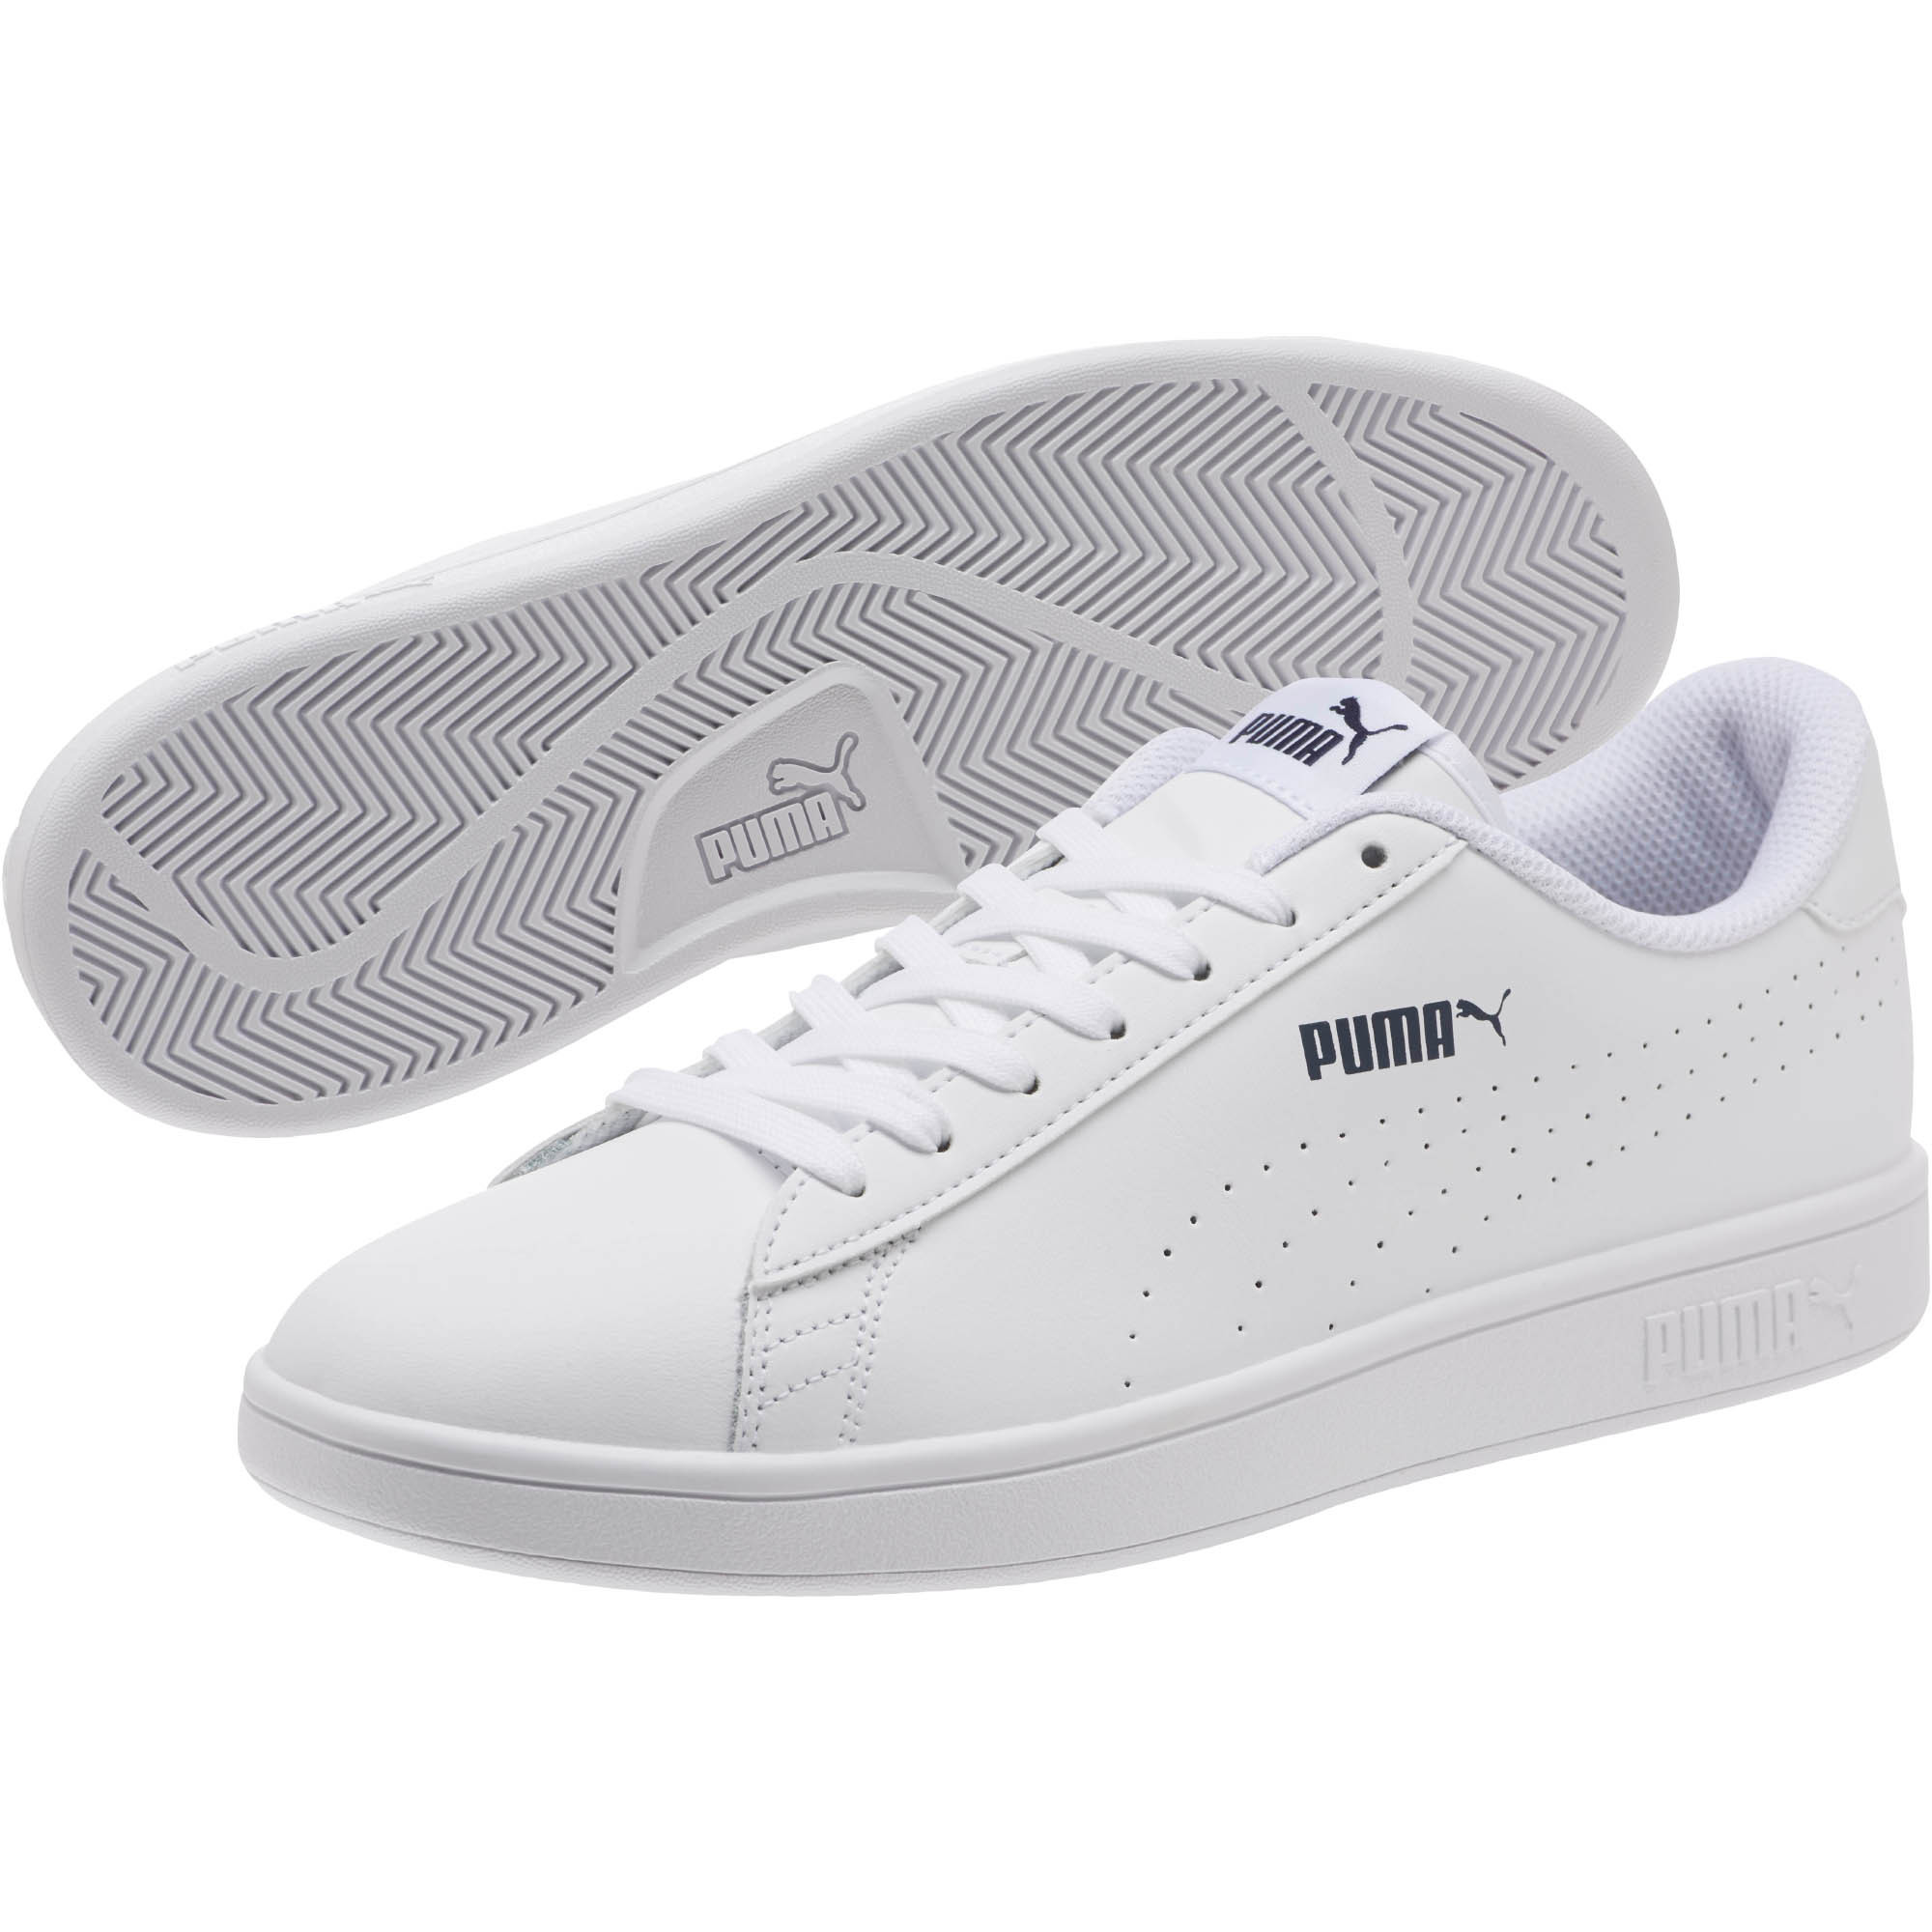 9ccda286725dbc Rakuten Home · Official Puma Store. PUMA Smash v2 Leather Perf Sneakers 0